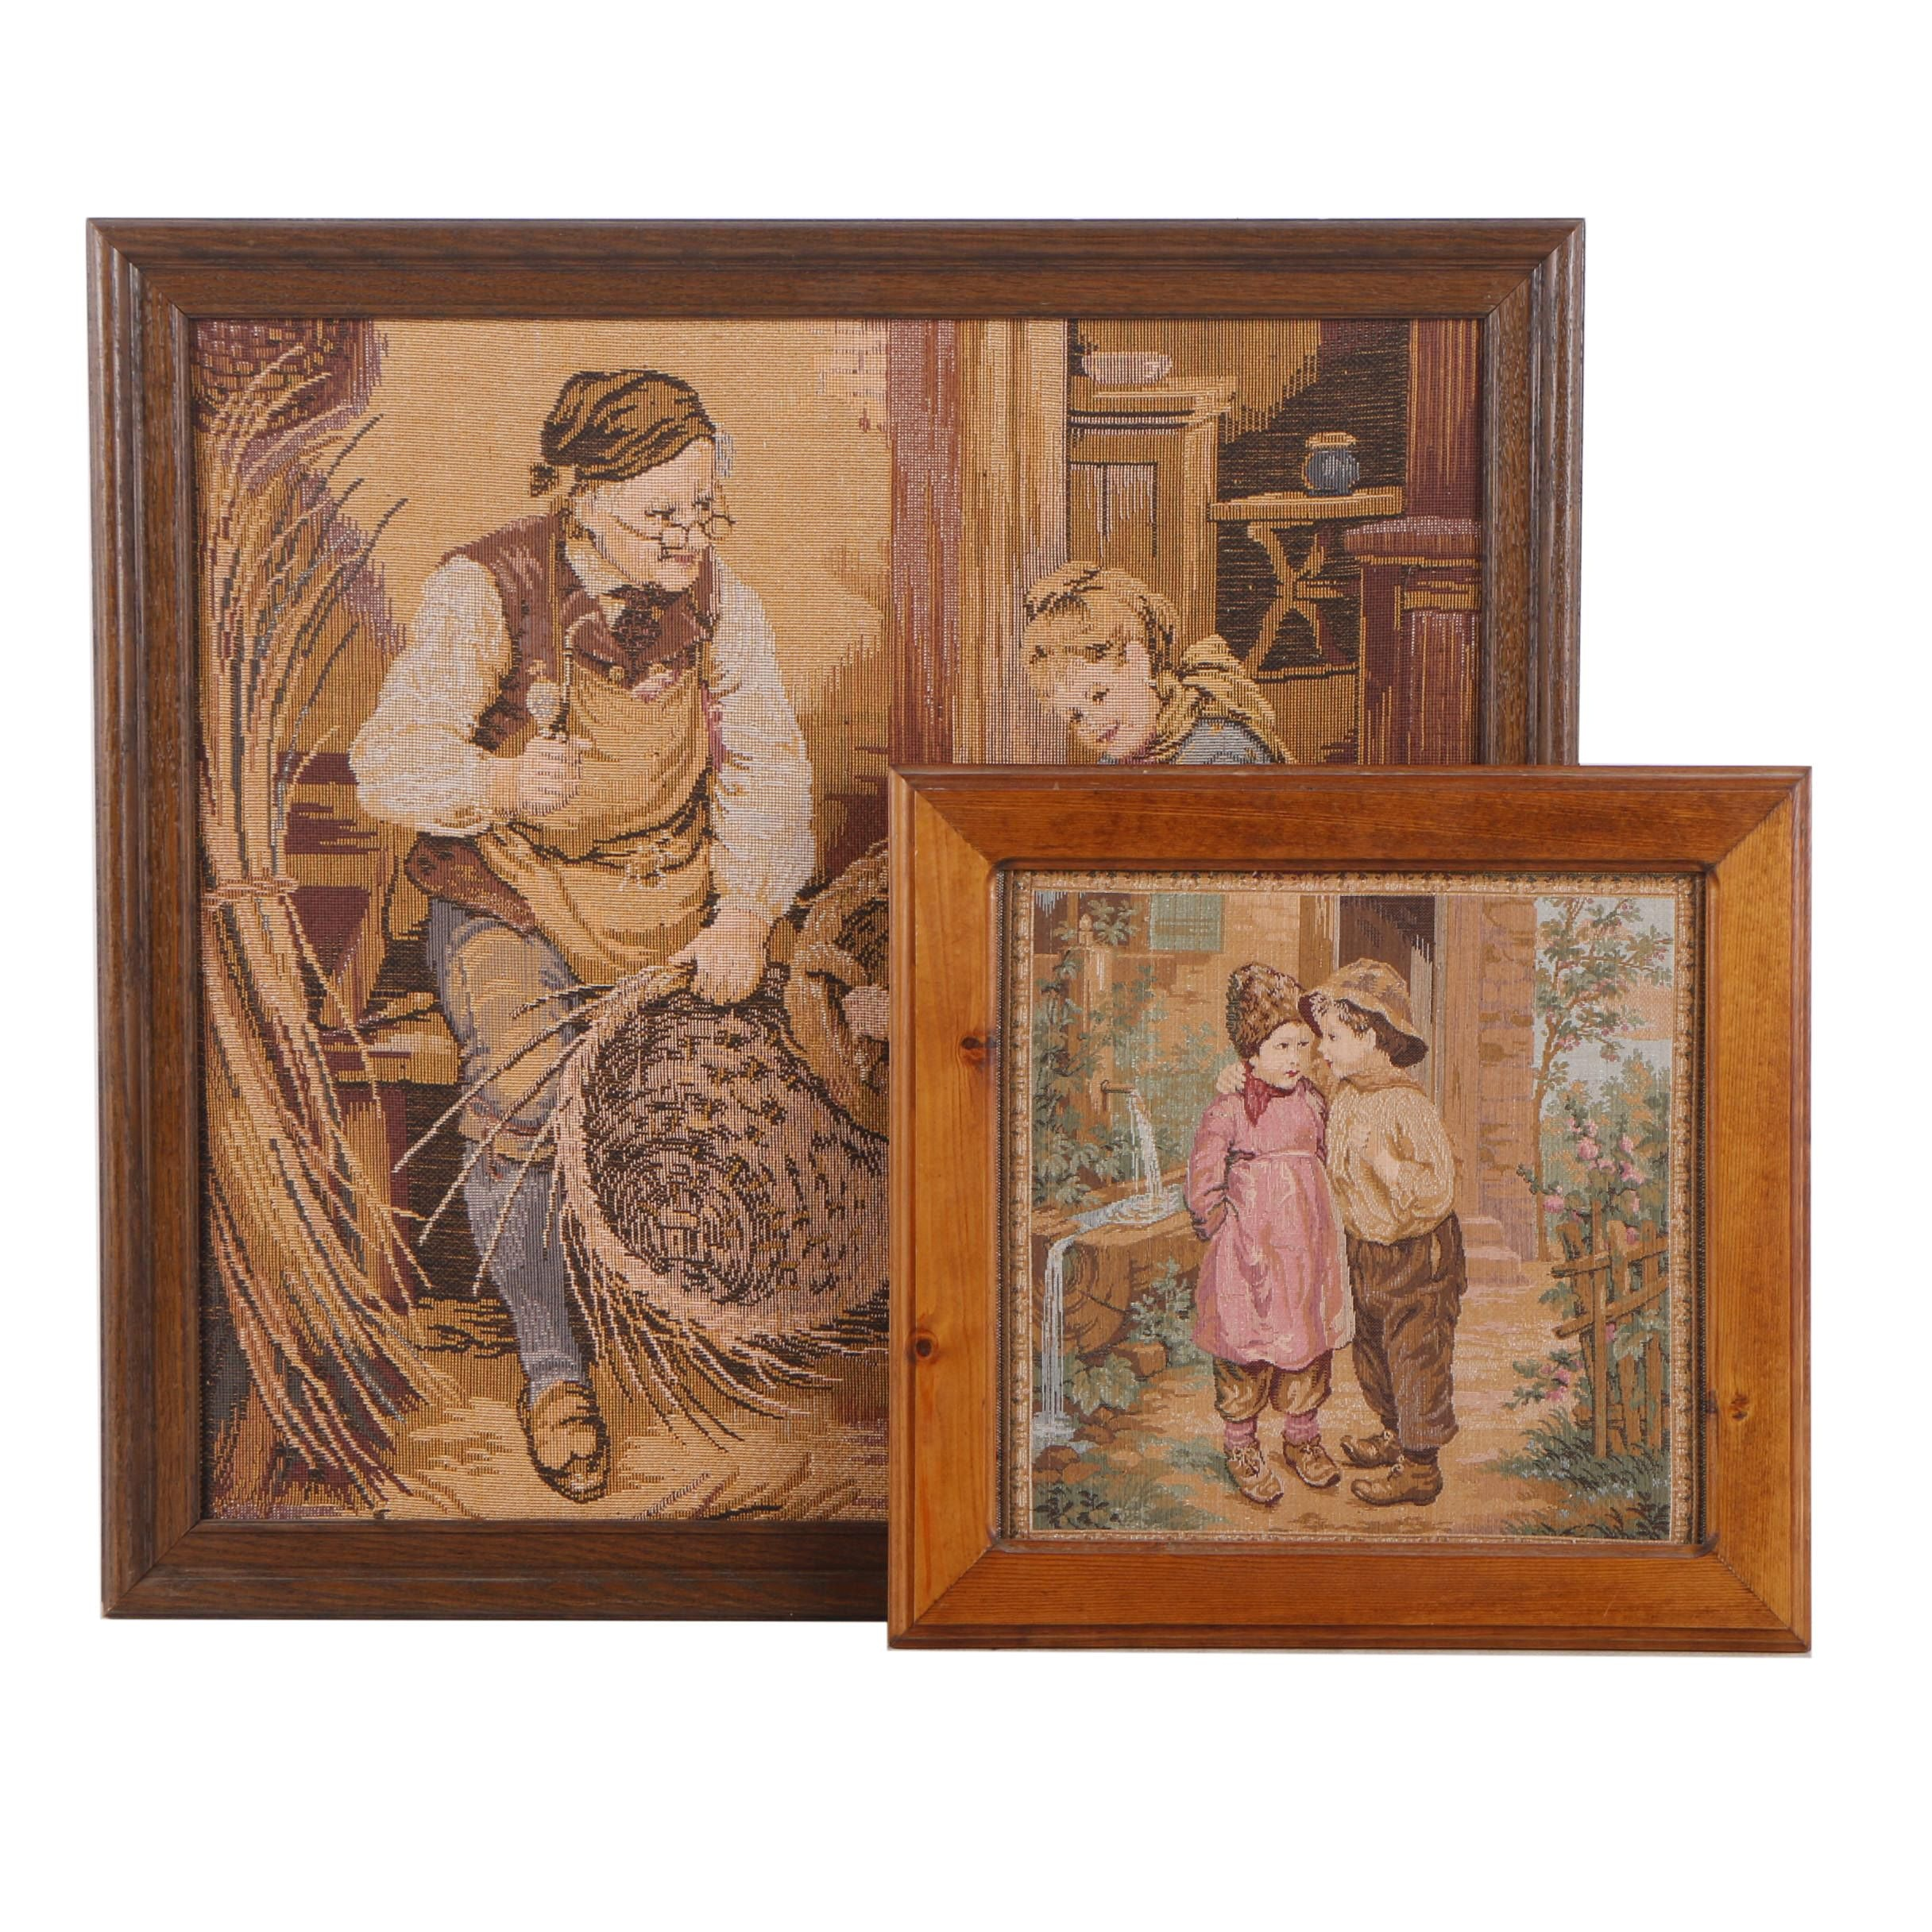 Woven Images of Children and Basket Weaver